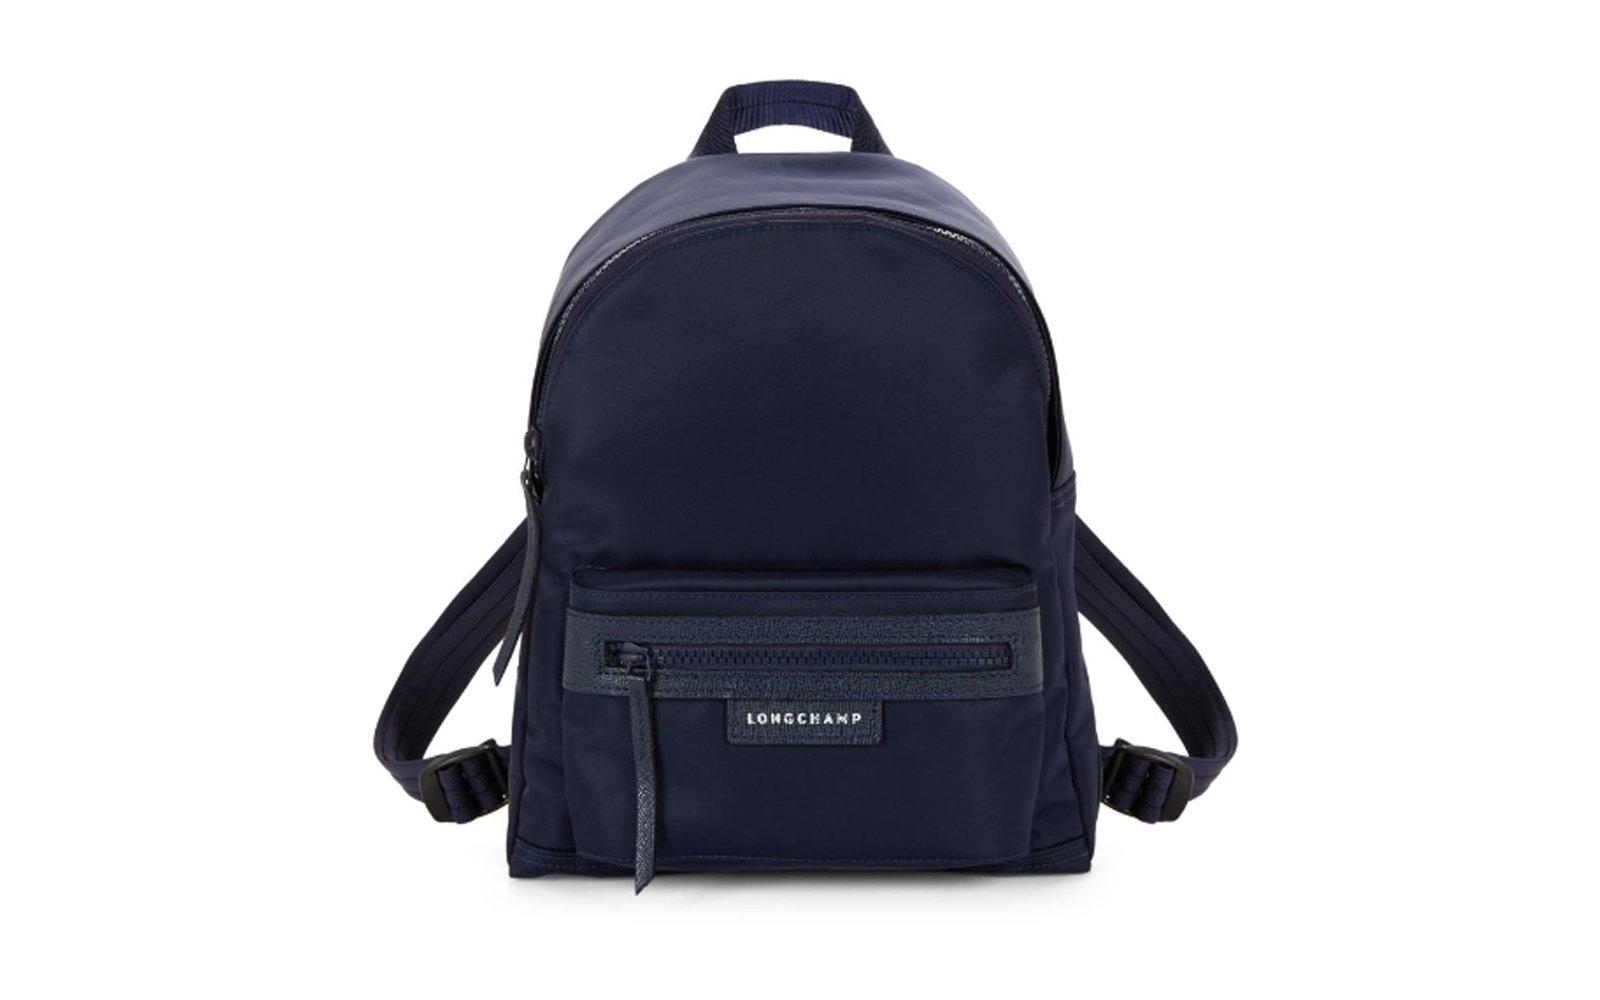 Longchamp Le Pliage Neo Backpack in Navy